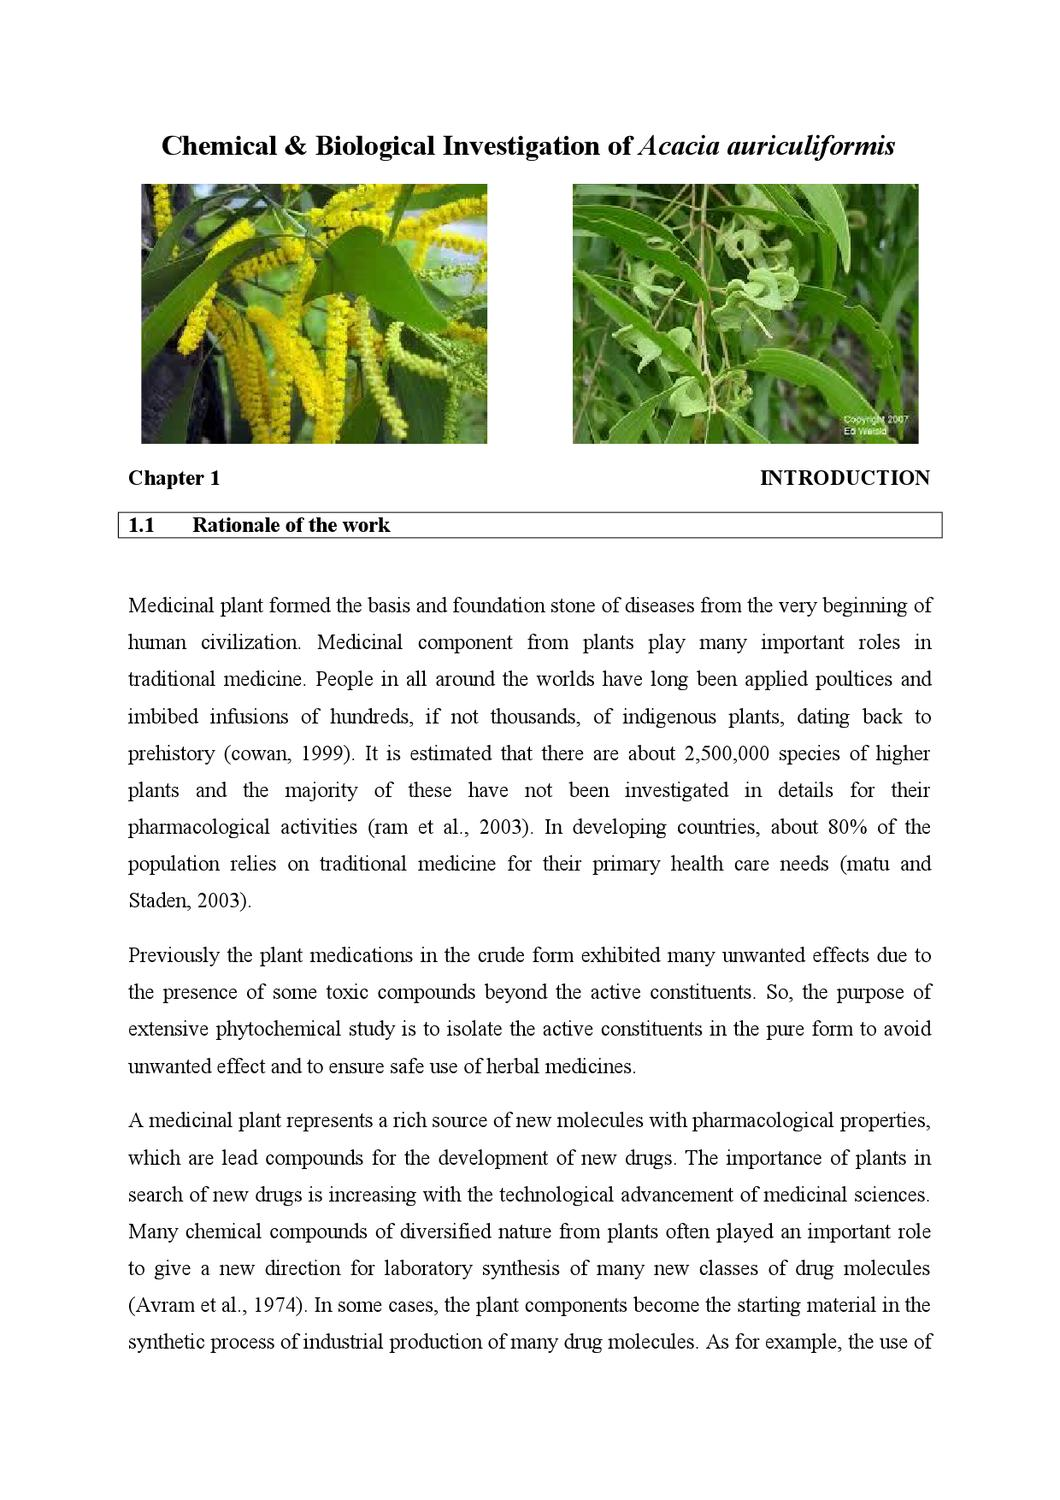 Chemical biological investigation of acacia auriculiformis by chemical biological investigation of acacia auriculiformis by regan ahmed issuu izmirmasajfo Image collections